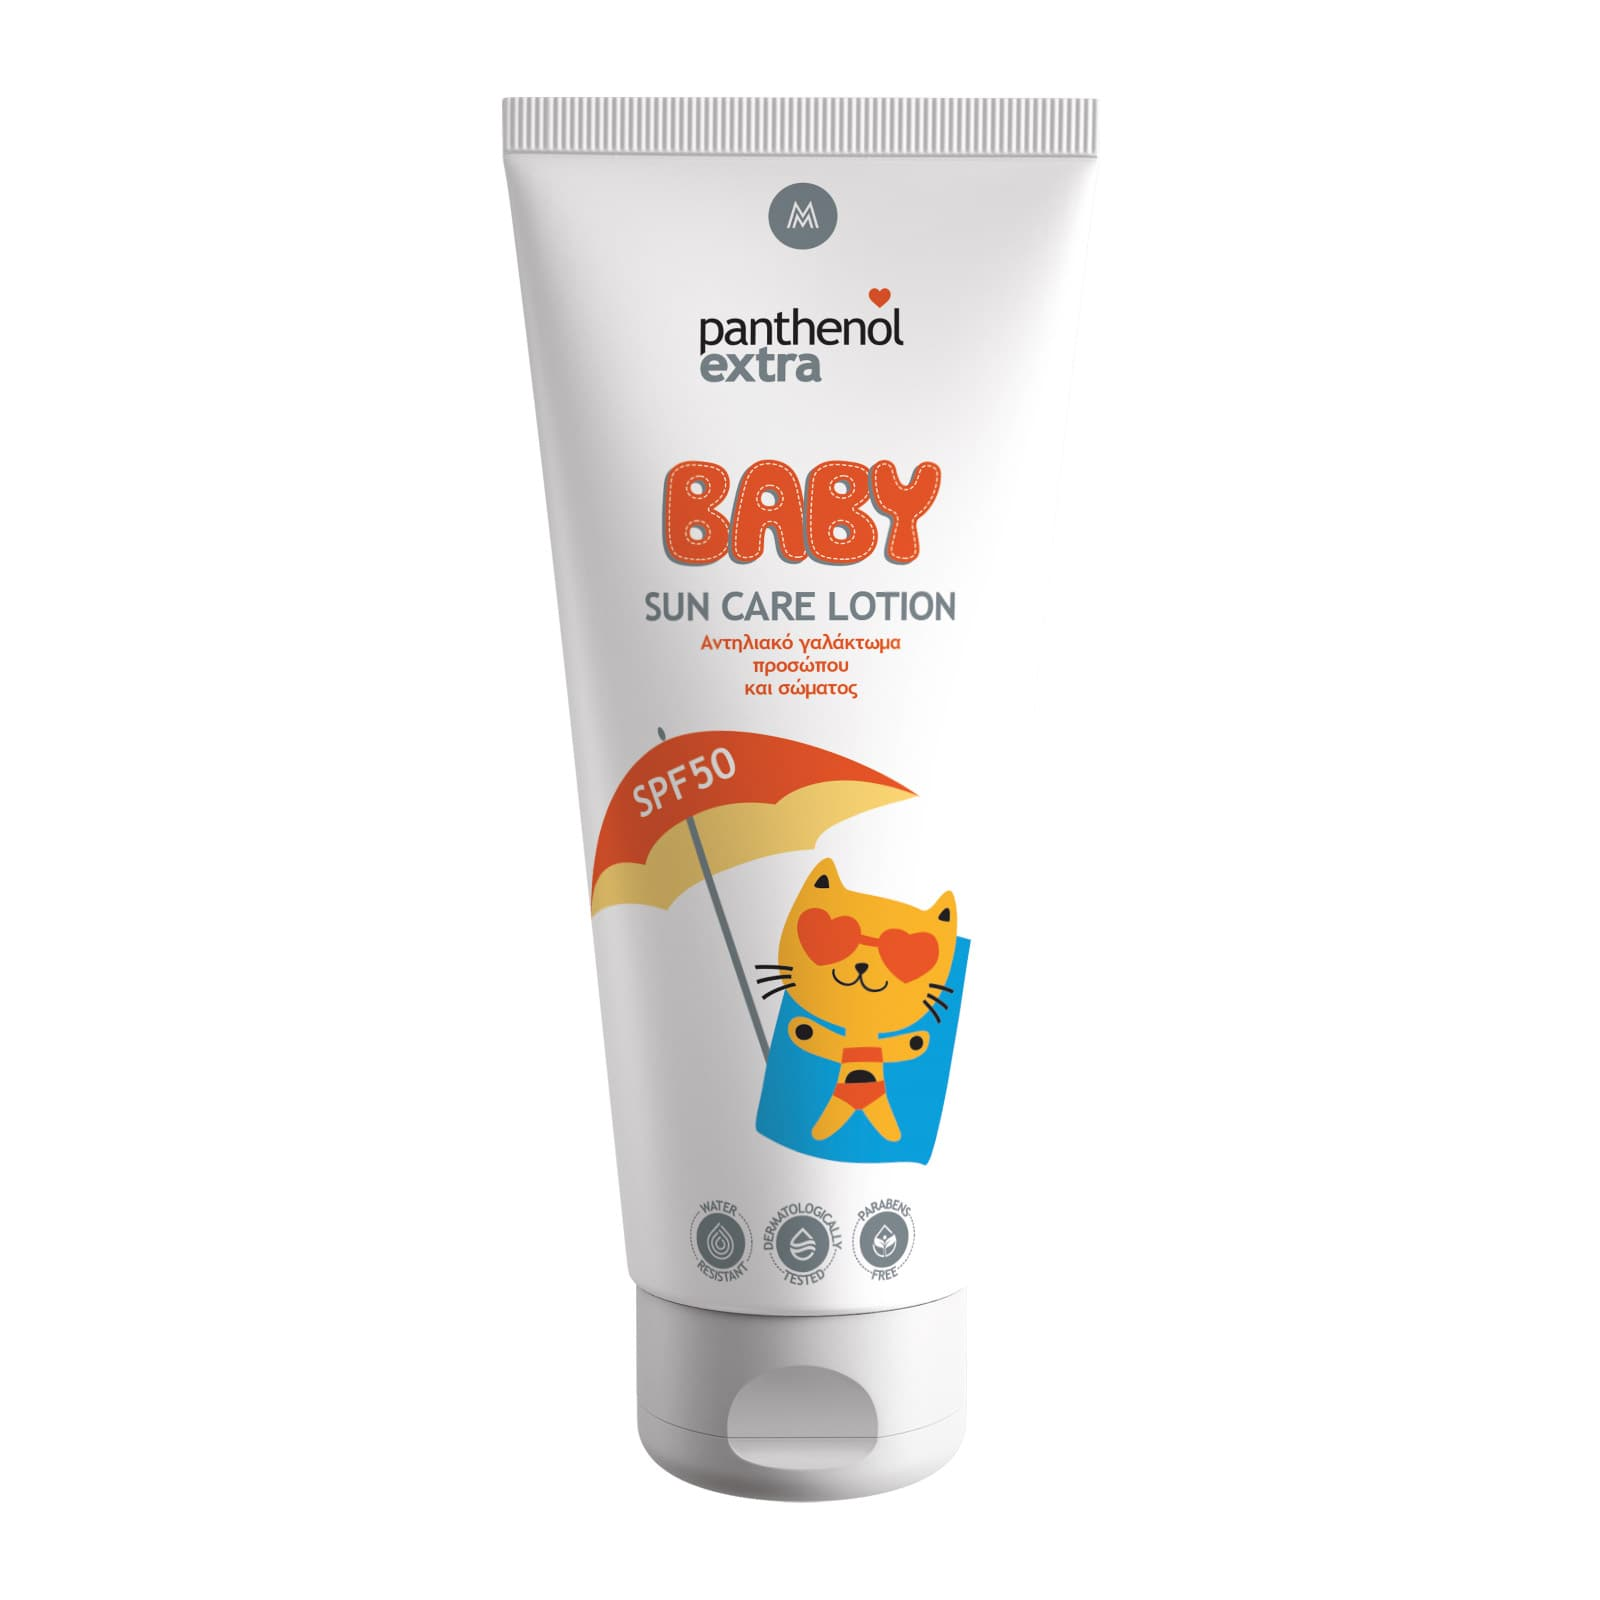 Panthenol Extra Baby Sun Care Lotion SPF50 Βρεφικό Αντηλιακό Γαλάκτωμα προσώπου & σώματος, 200ml